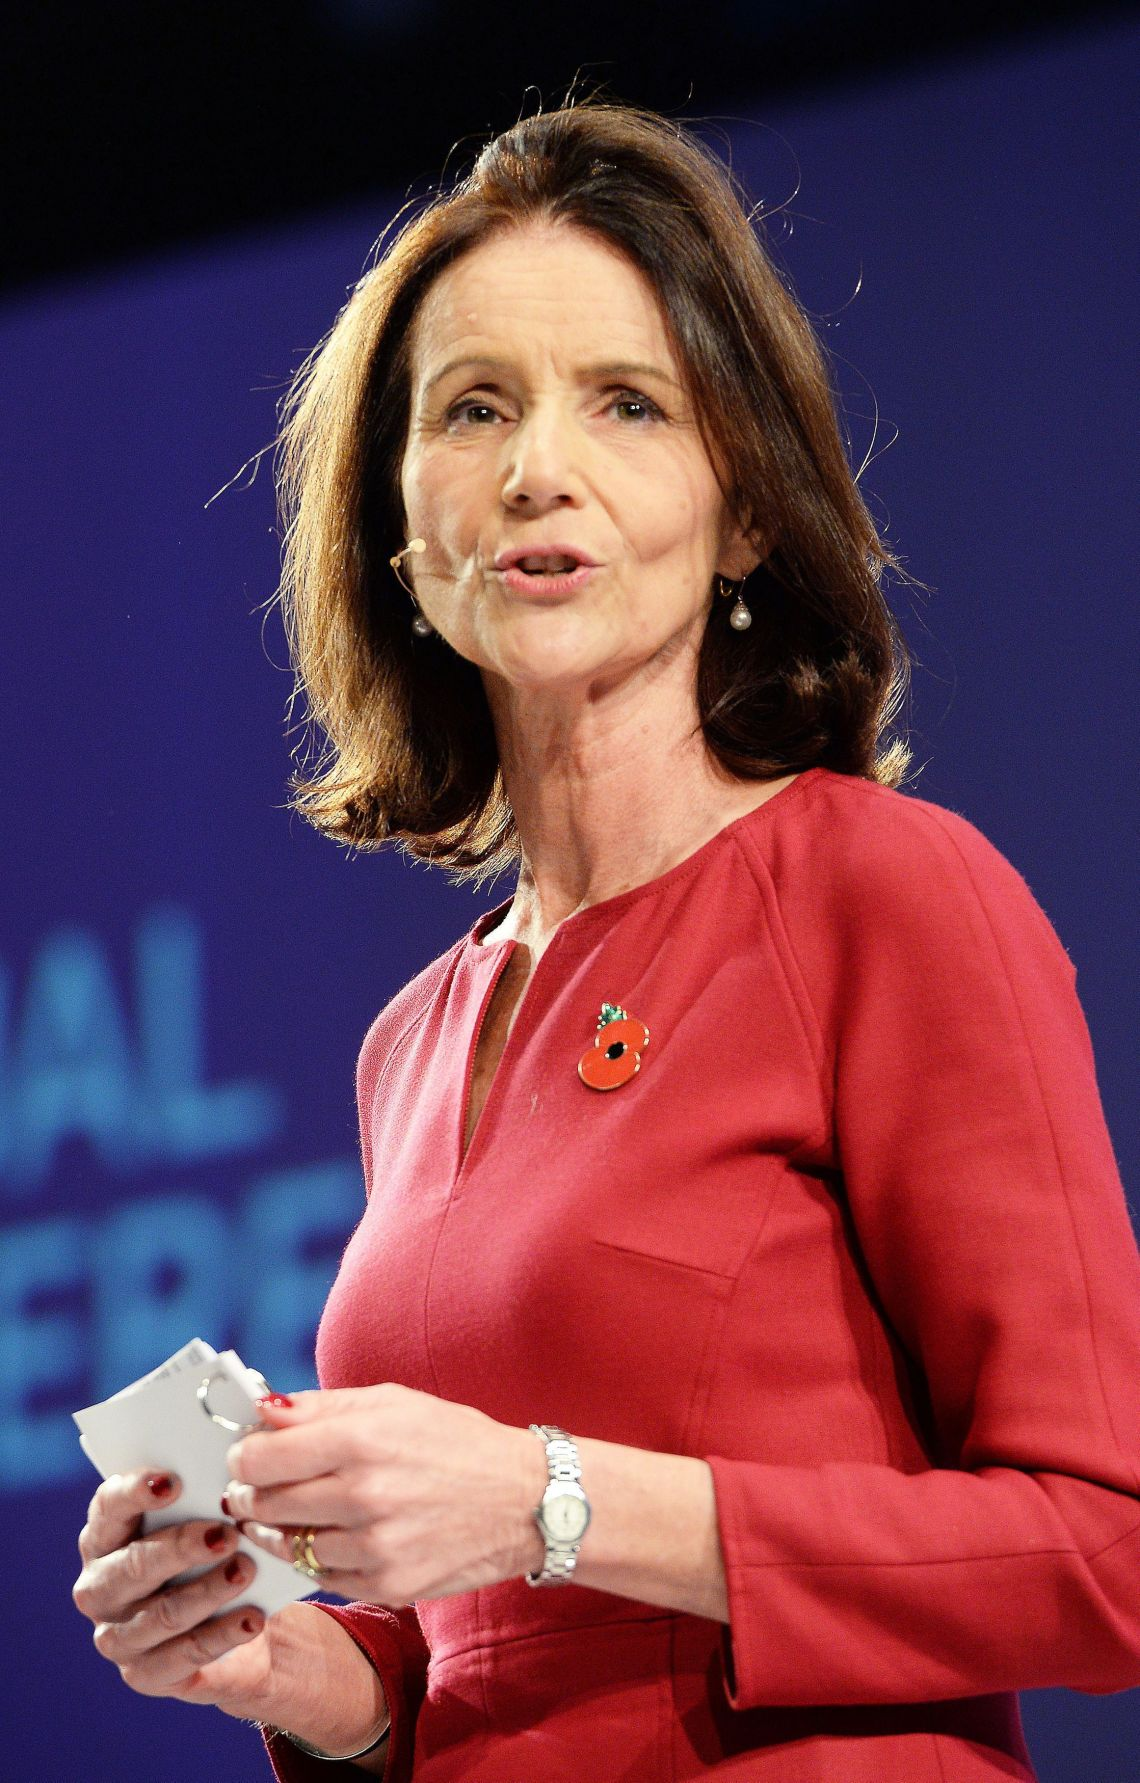 CBI chief Carolyn Fairbairn